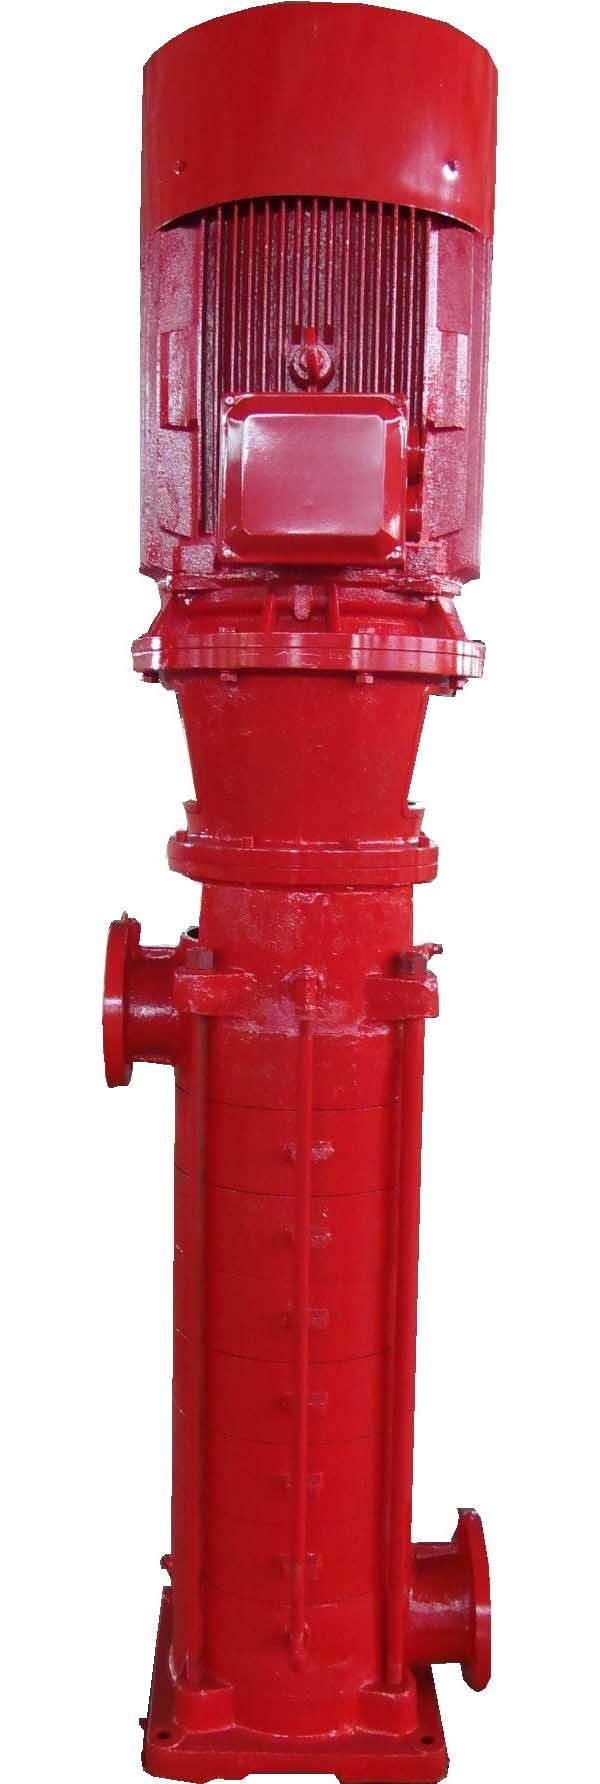 XBD multi-stage fire pump